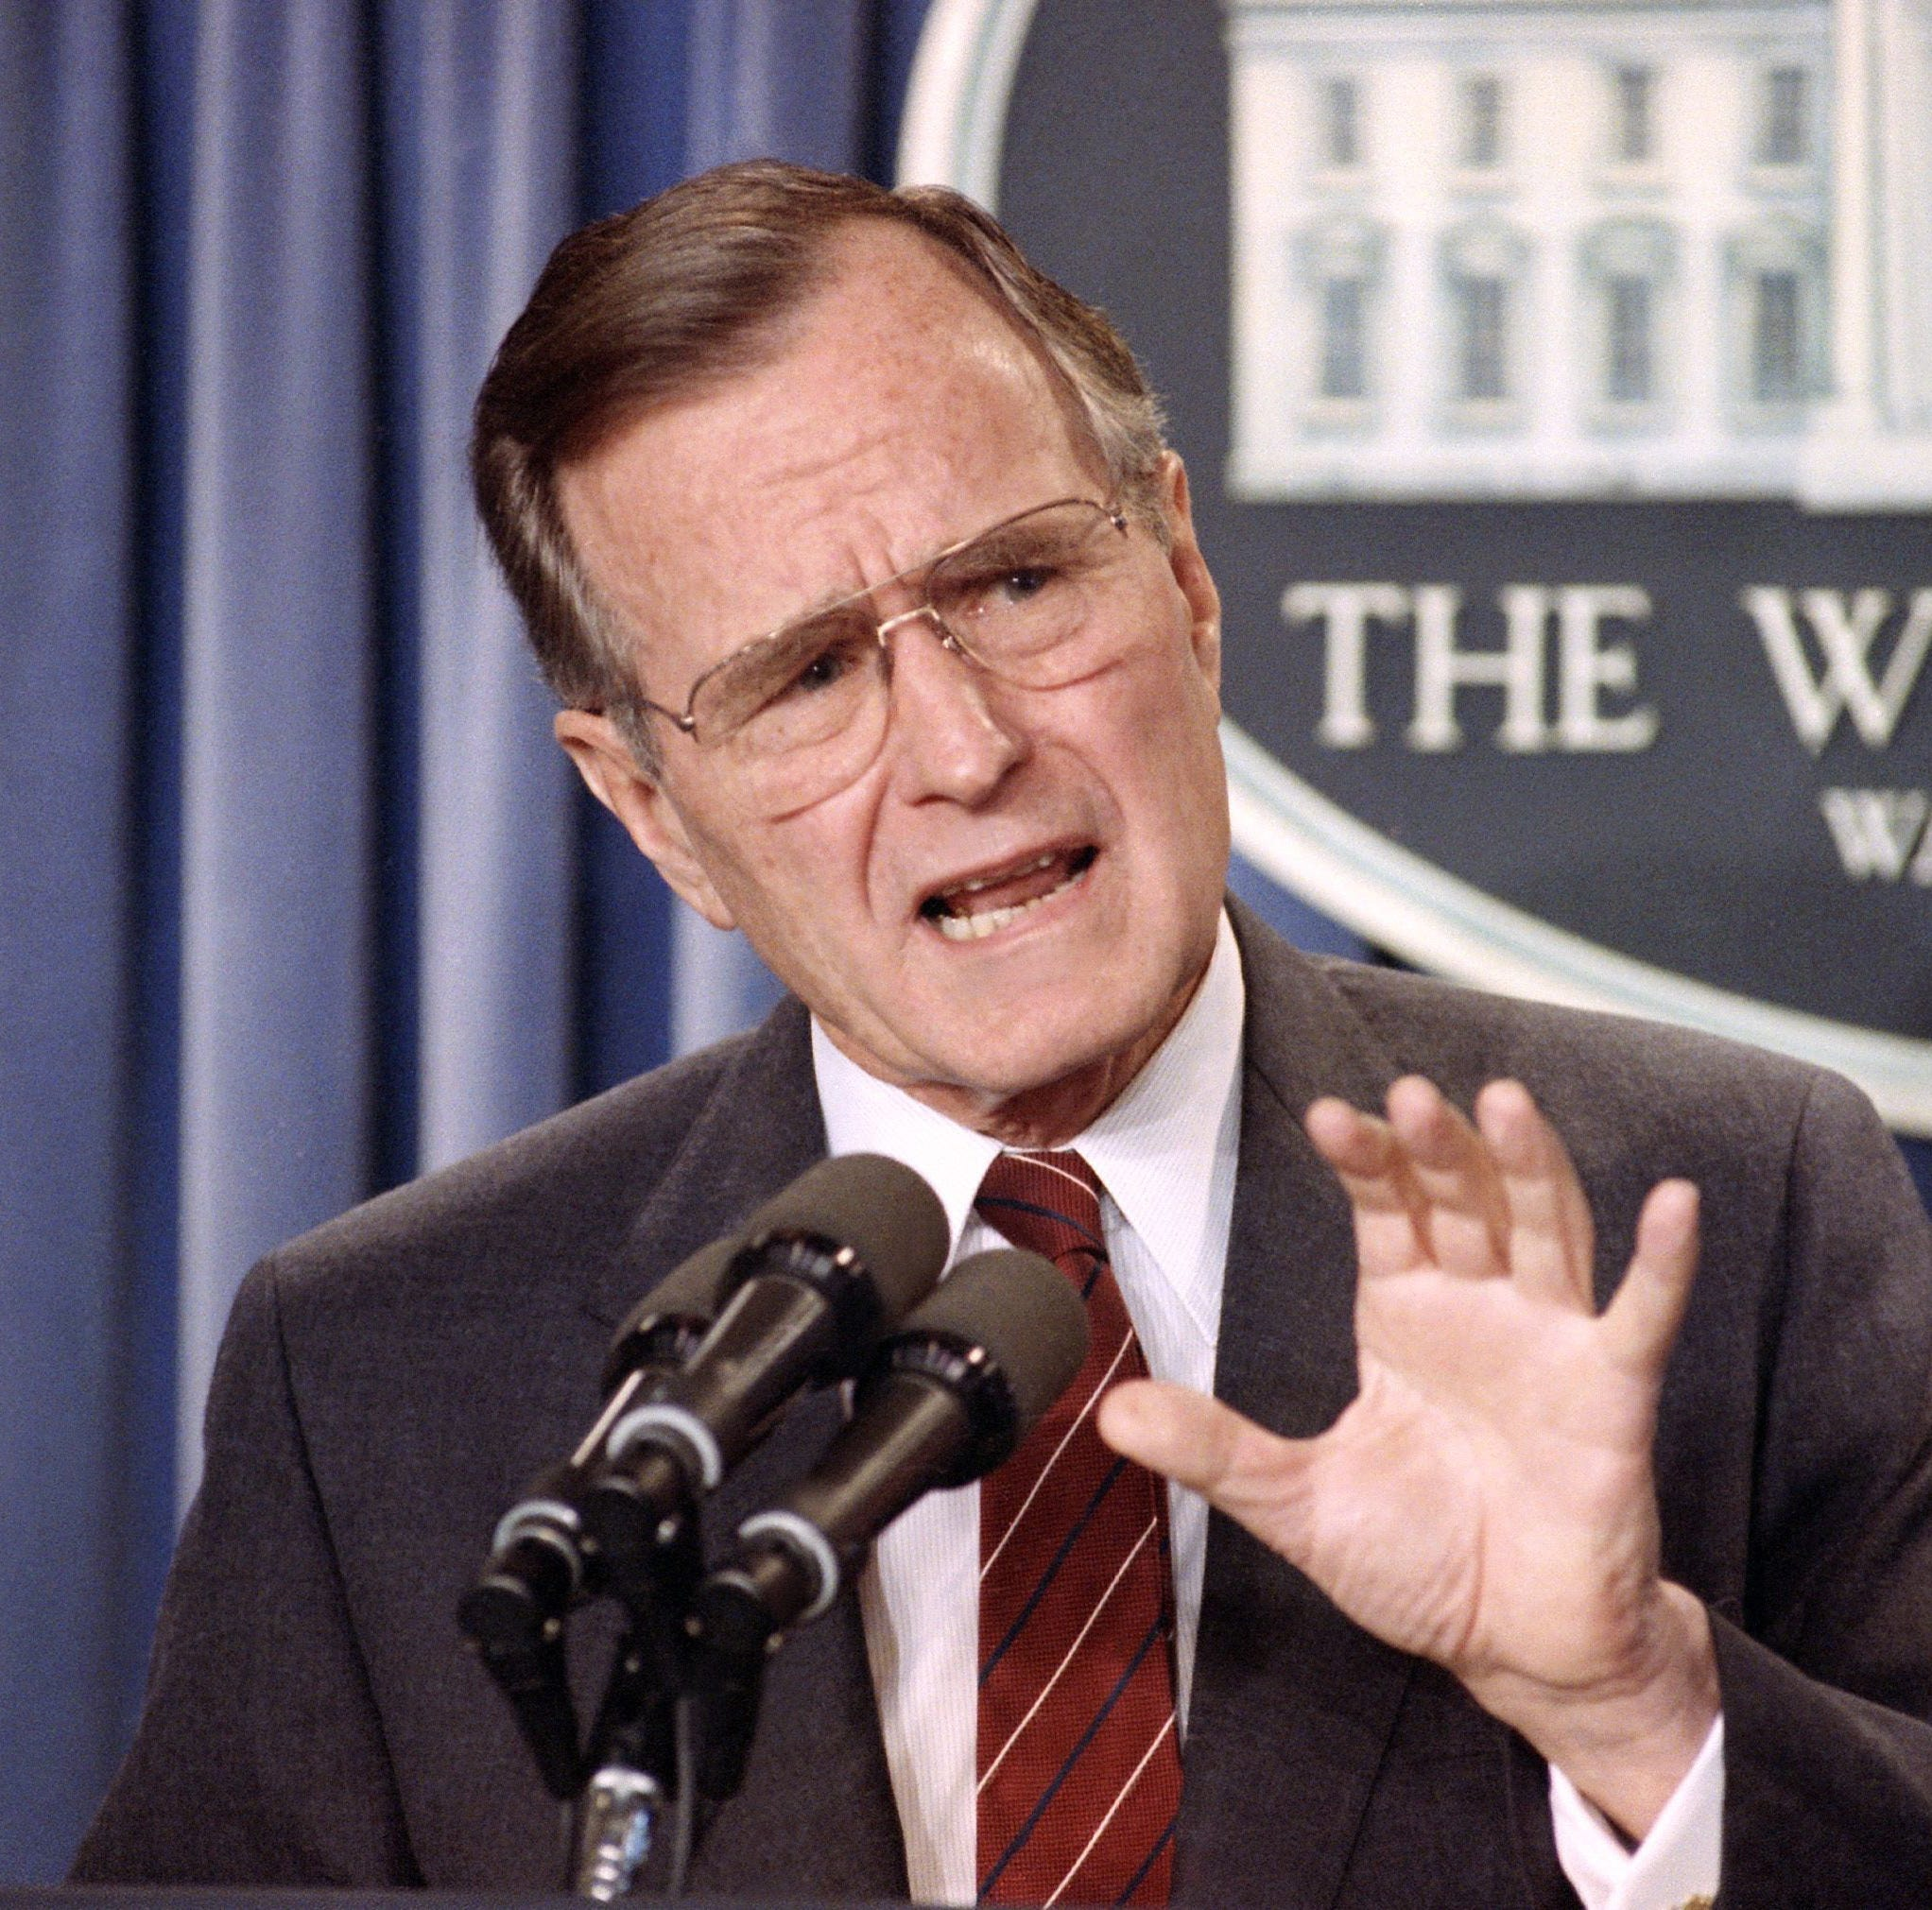 Five lessons I learned during George H.W. Bush's presidency